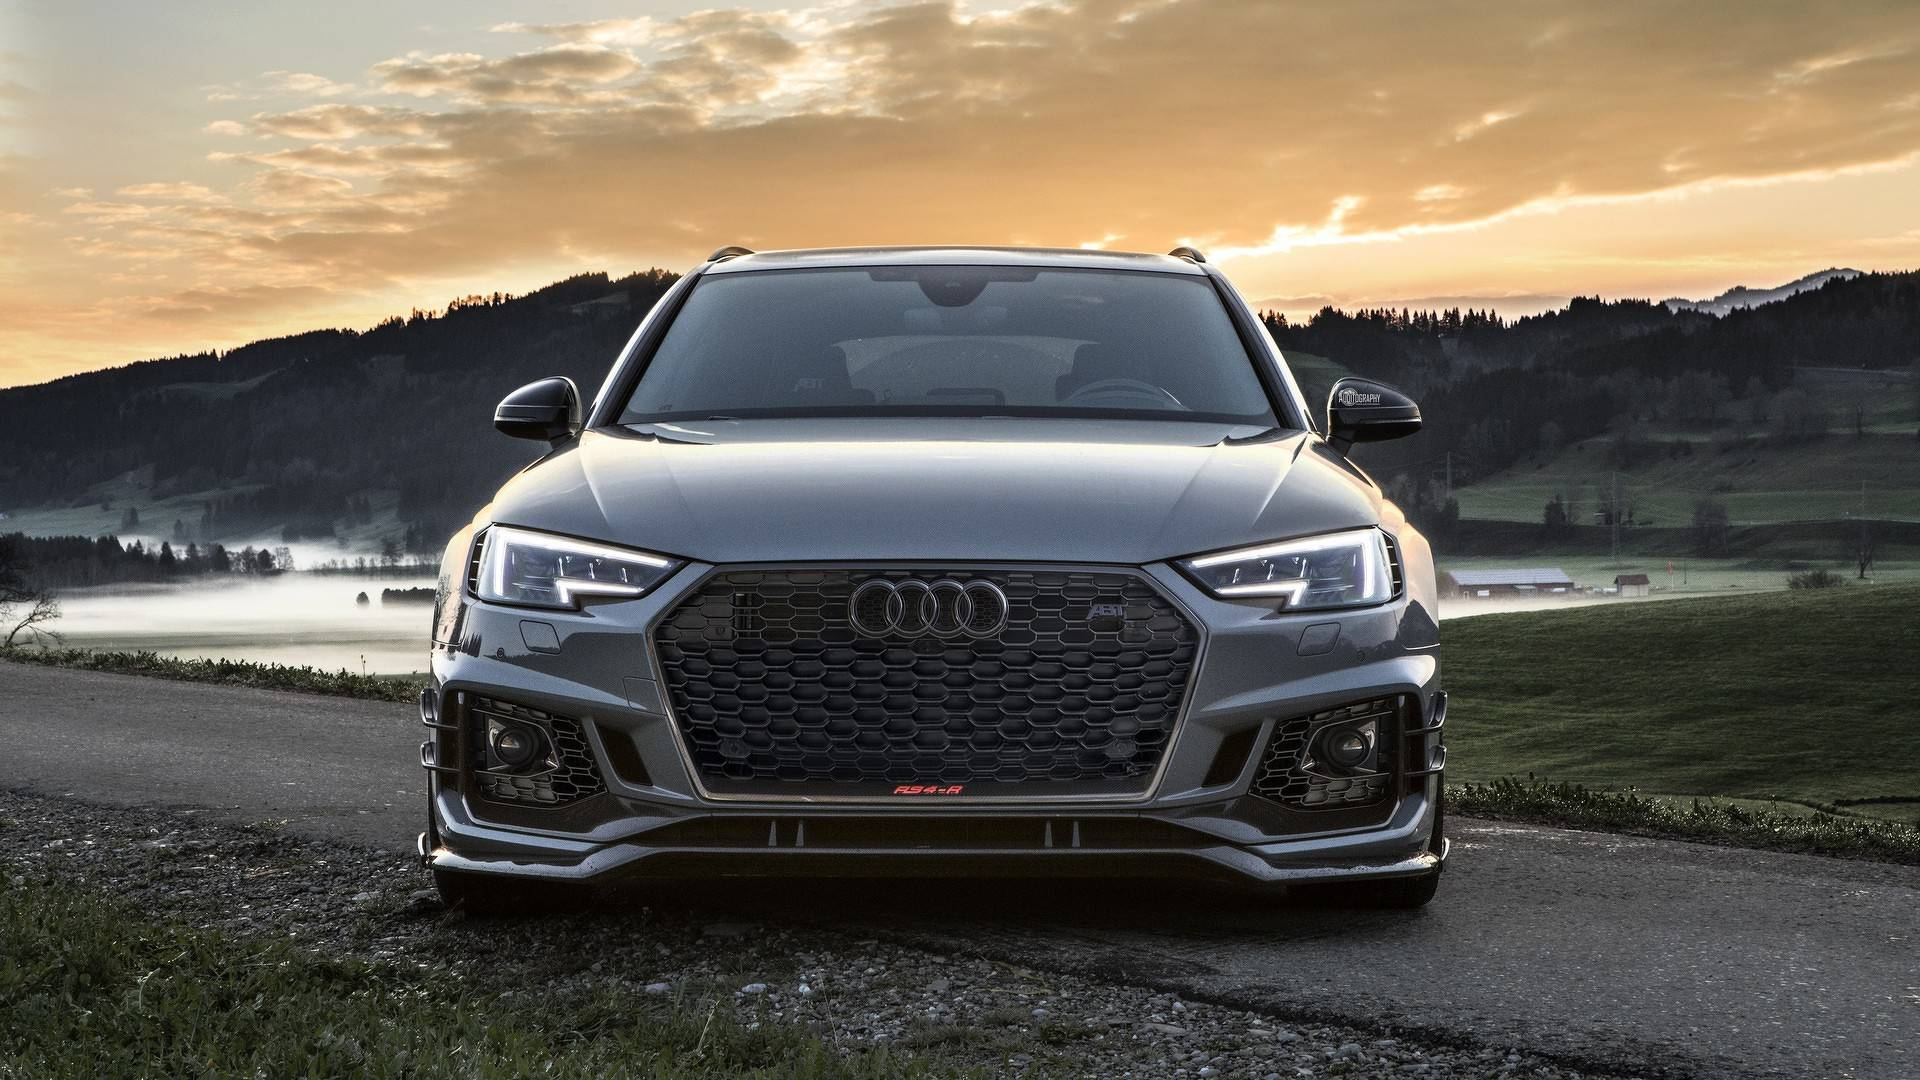 Audi Rs4 R By Abt Poses For A Very Talented Photographer